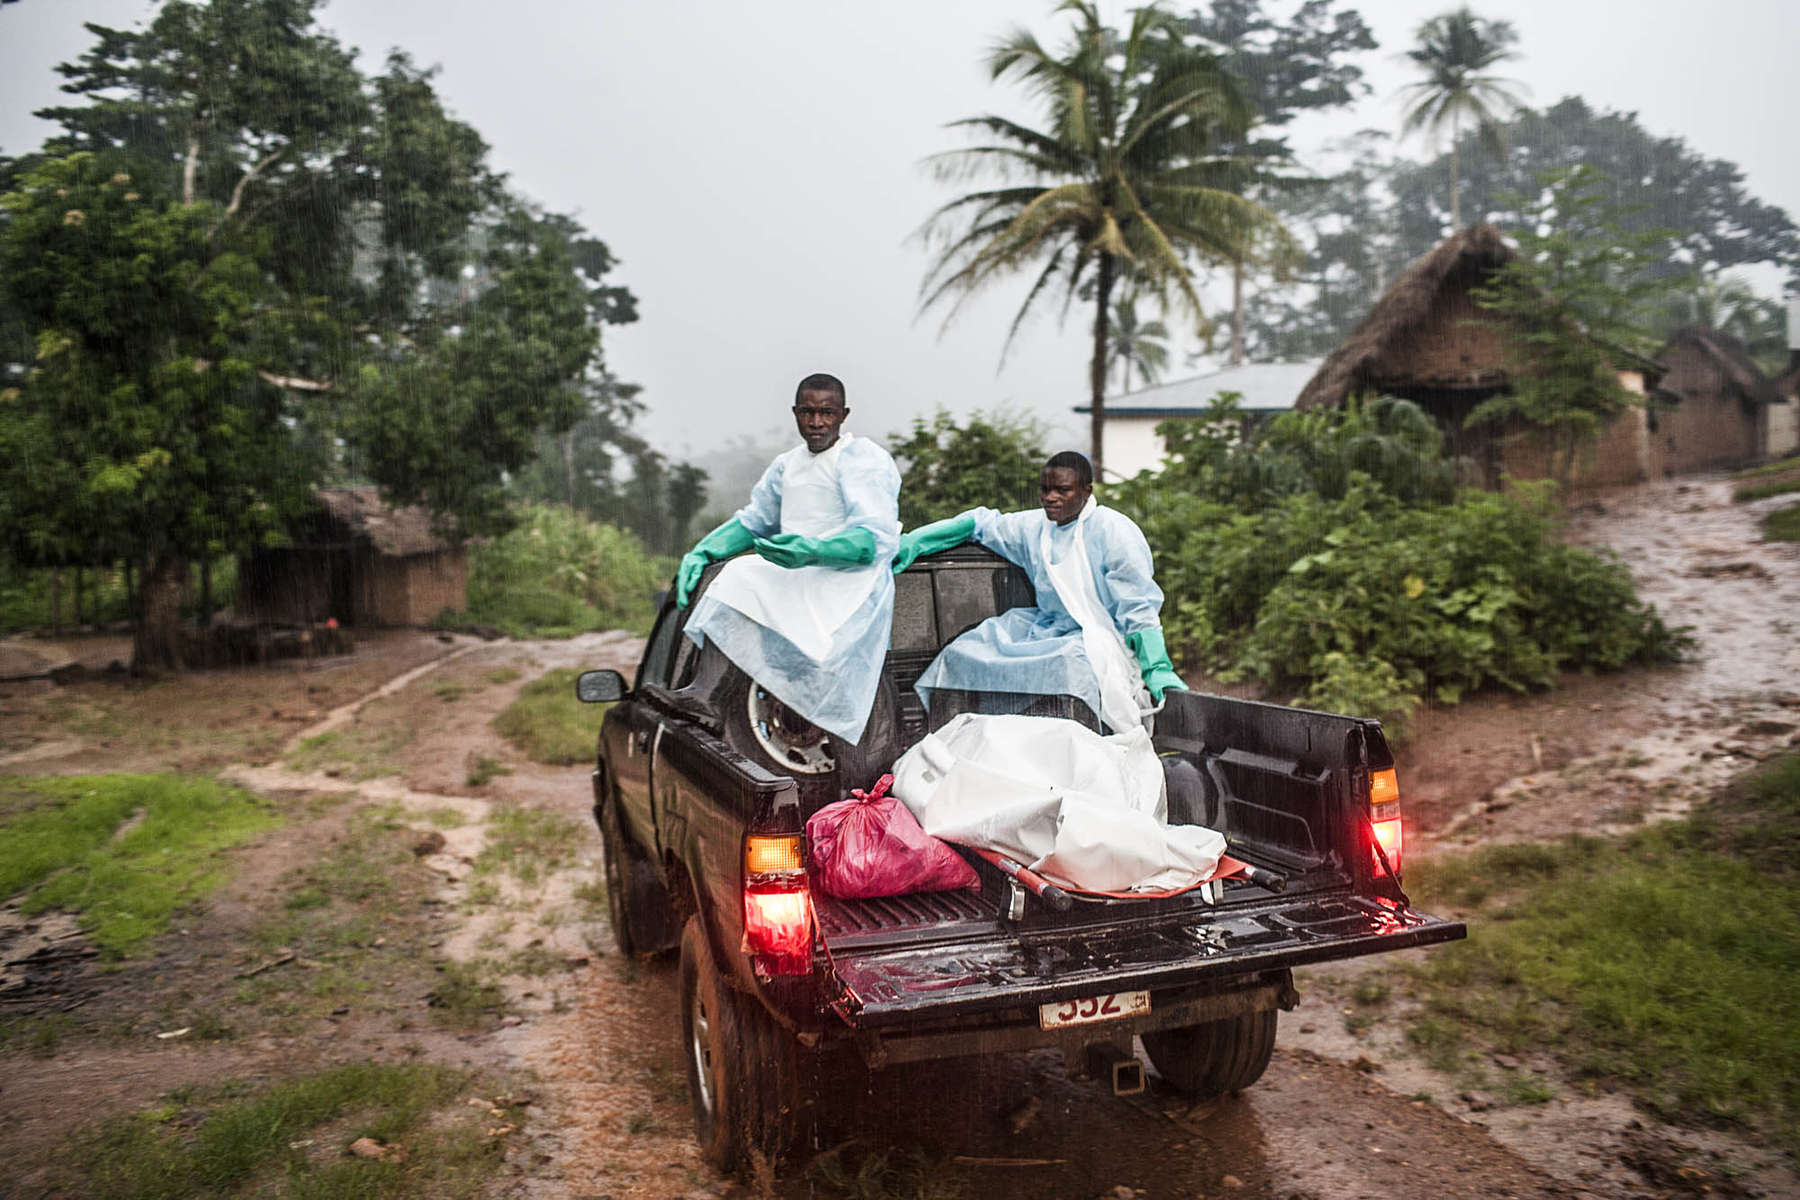 Red Cross burial workers transport the body of a man suspected of dying from Ebola in the village of Sengema, Sierra Leone on Saturday, August 18, 2014. Bodies are buried away from residential areas in a bid to ensure that the infection will not spread. (Pete Muller/Prime for the Washington Post)